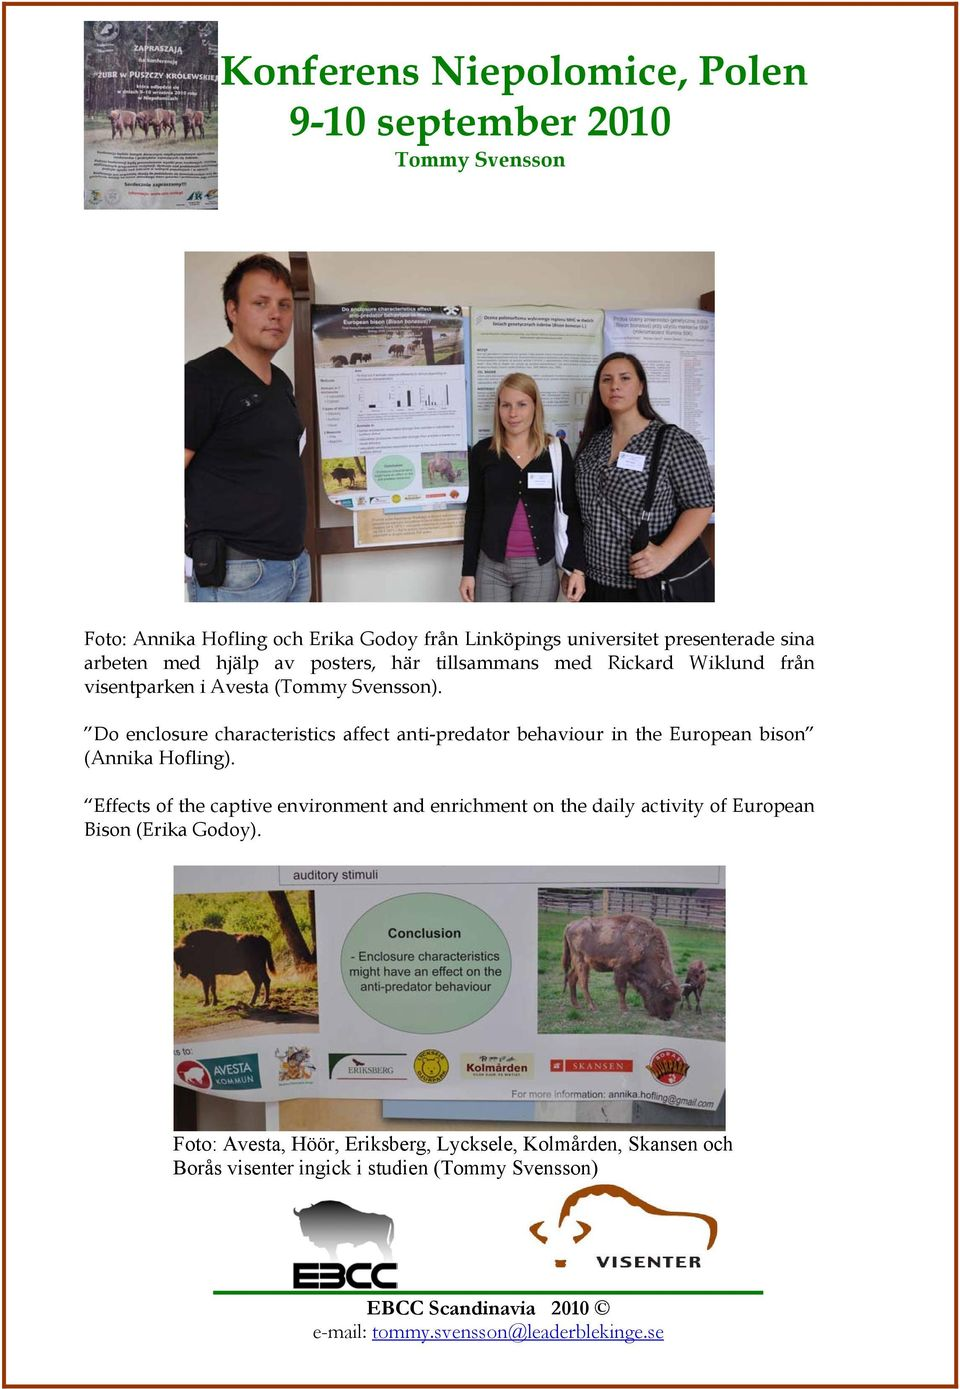 Do enclosure characteristics affect anti-predator behaviour in the European bison (Annika Hofling).